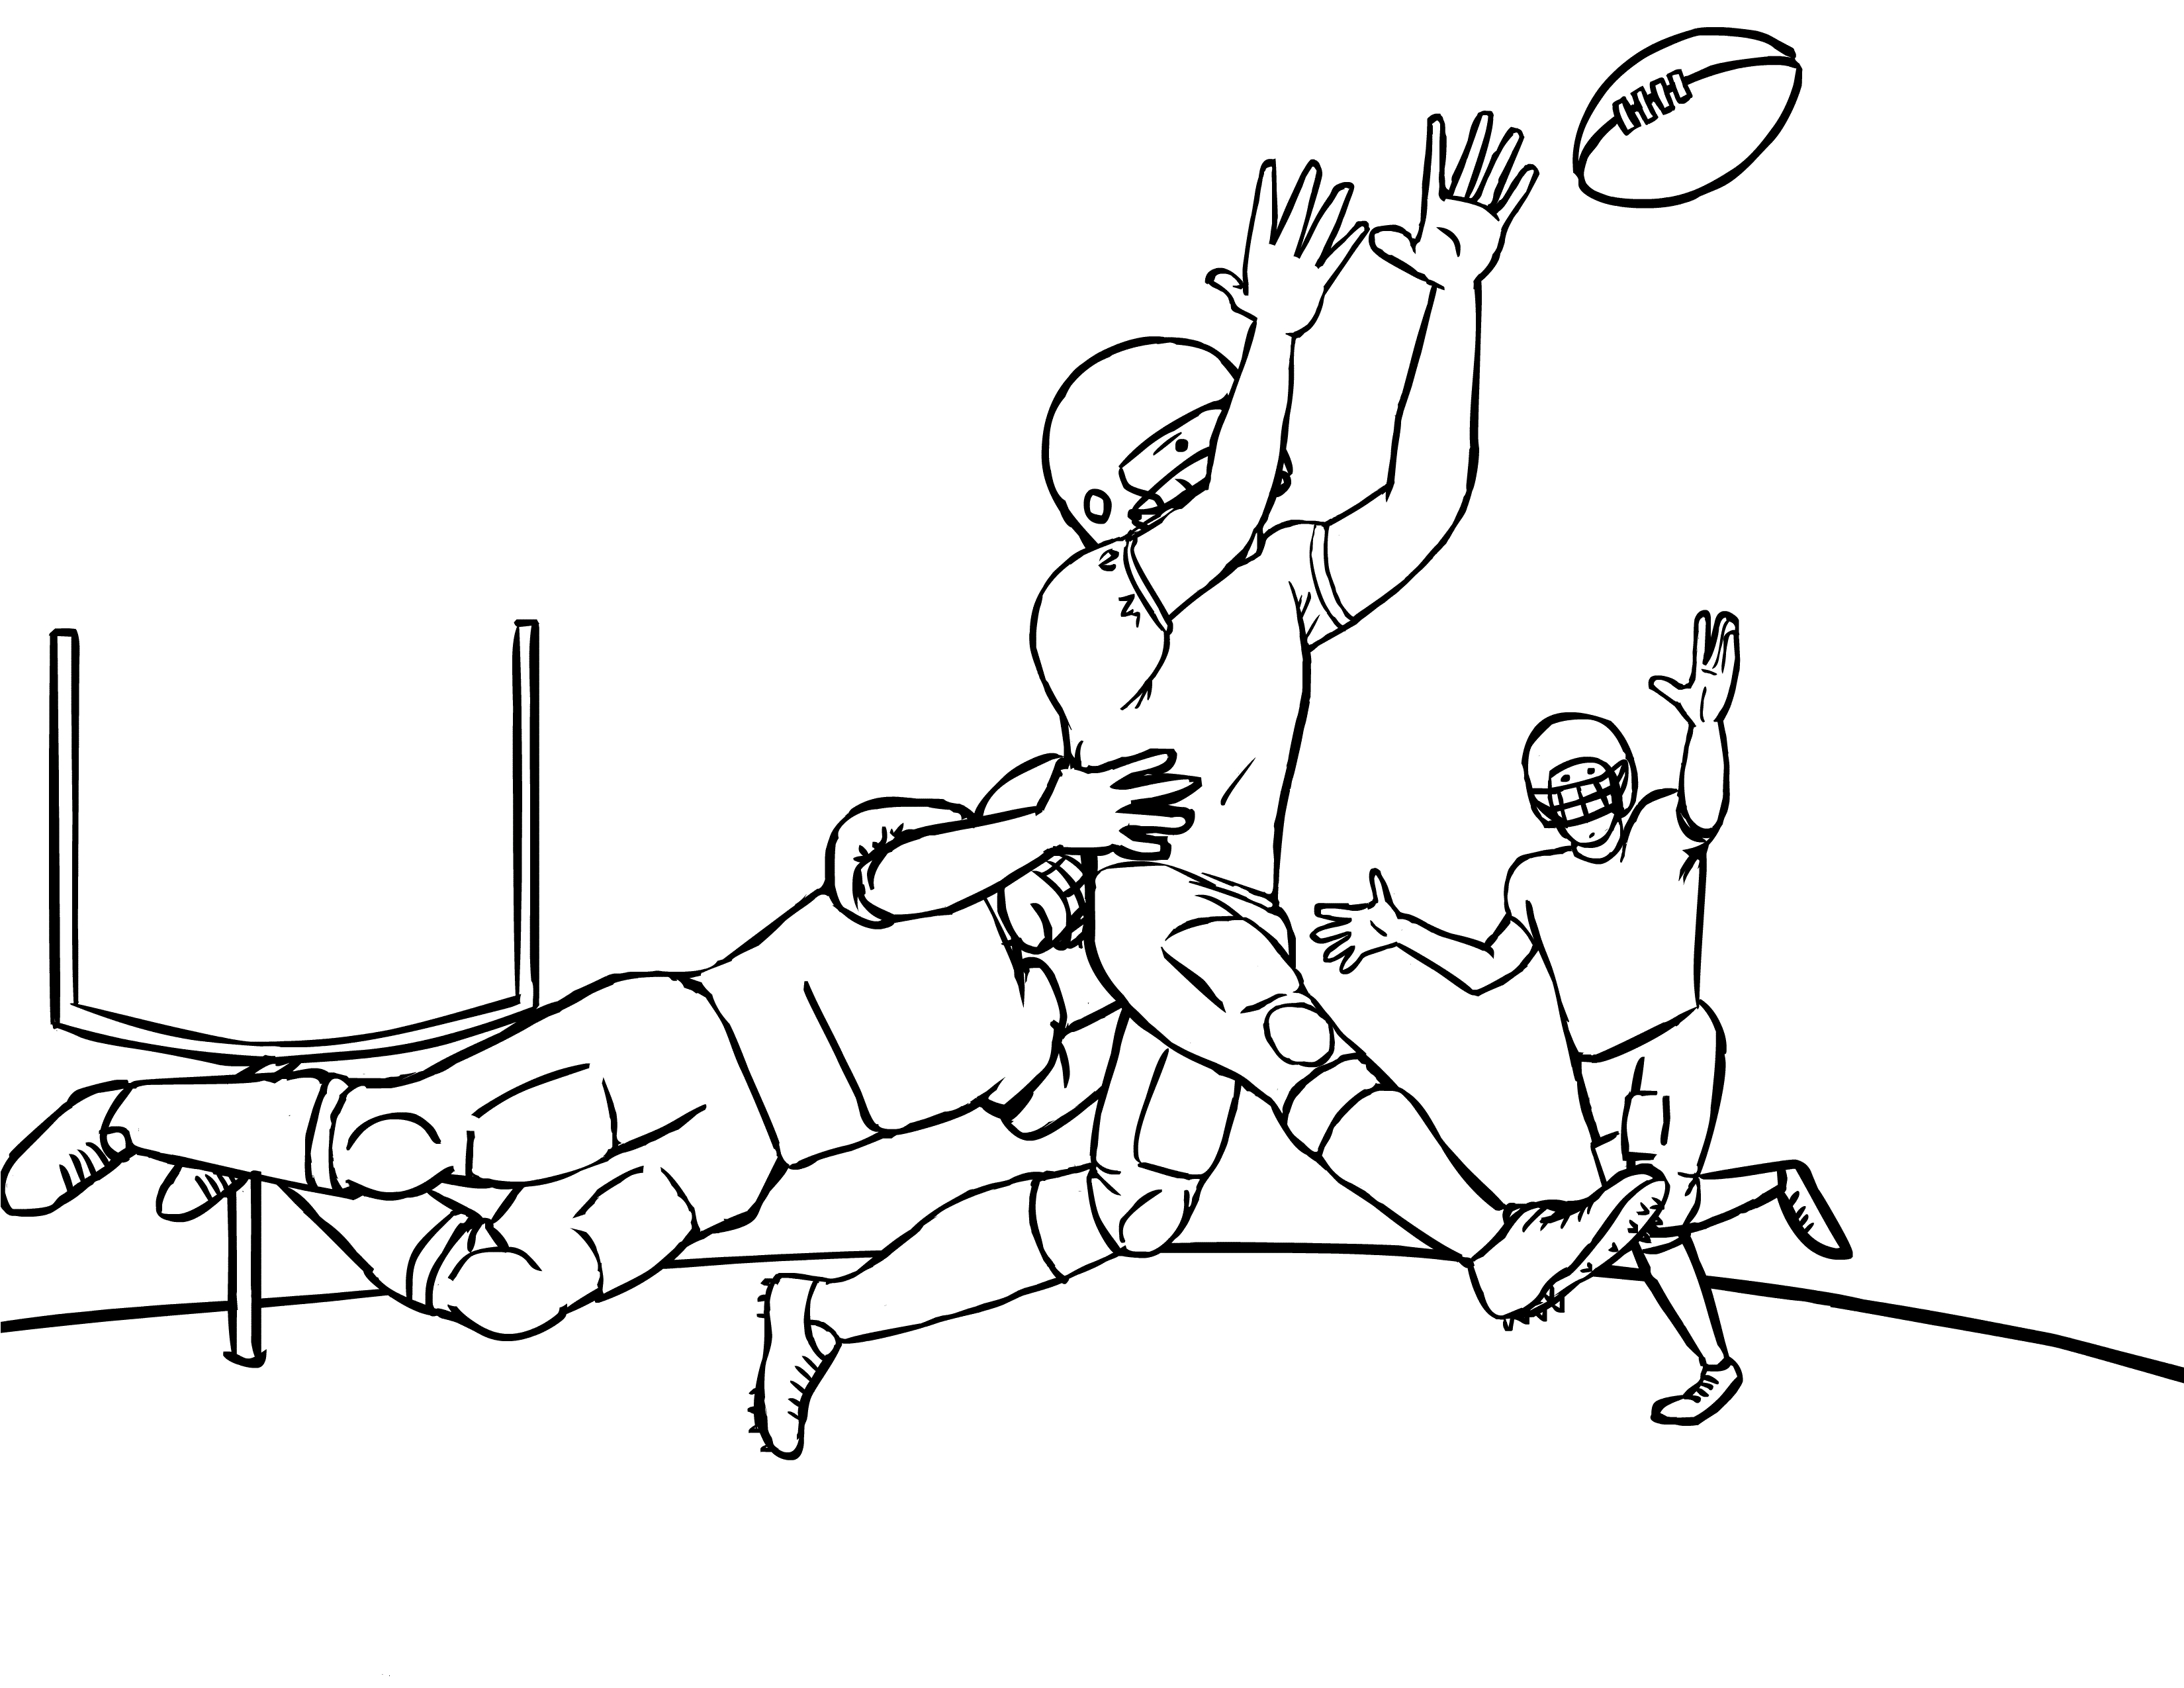 Football Coloring Pages Printable - Free Printable Football Coloring Pages for Kids Best